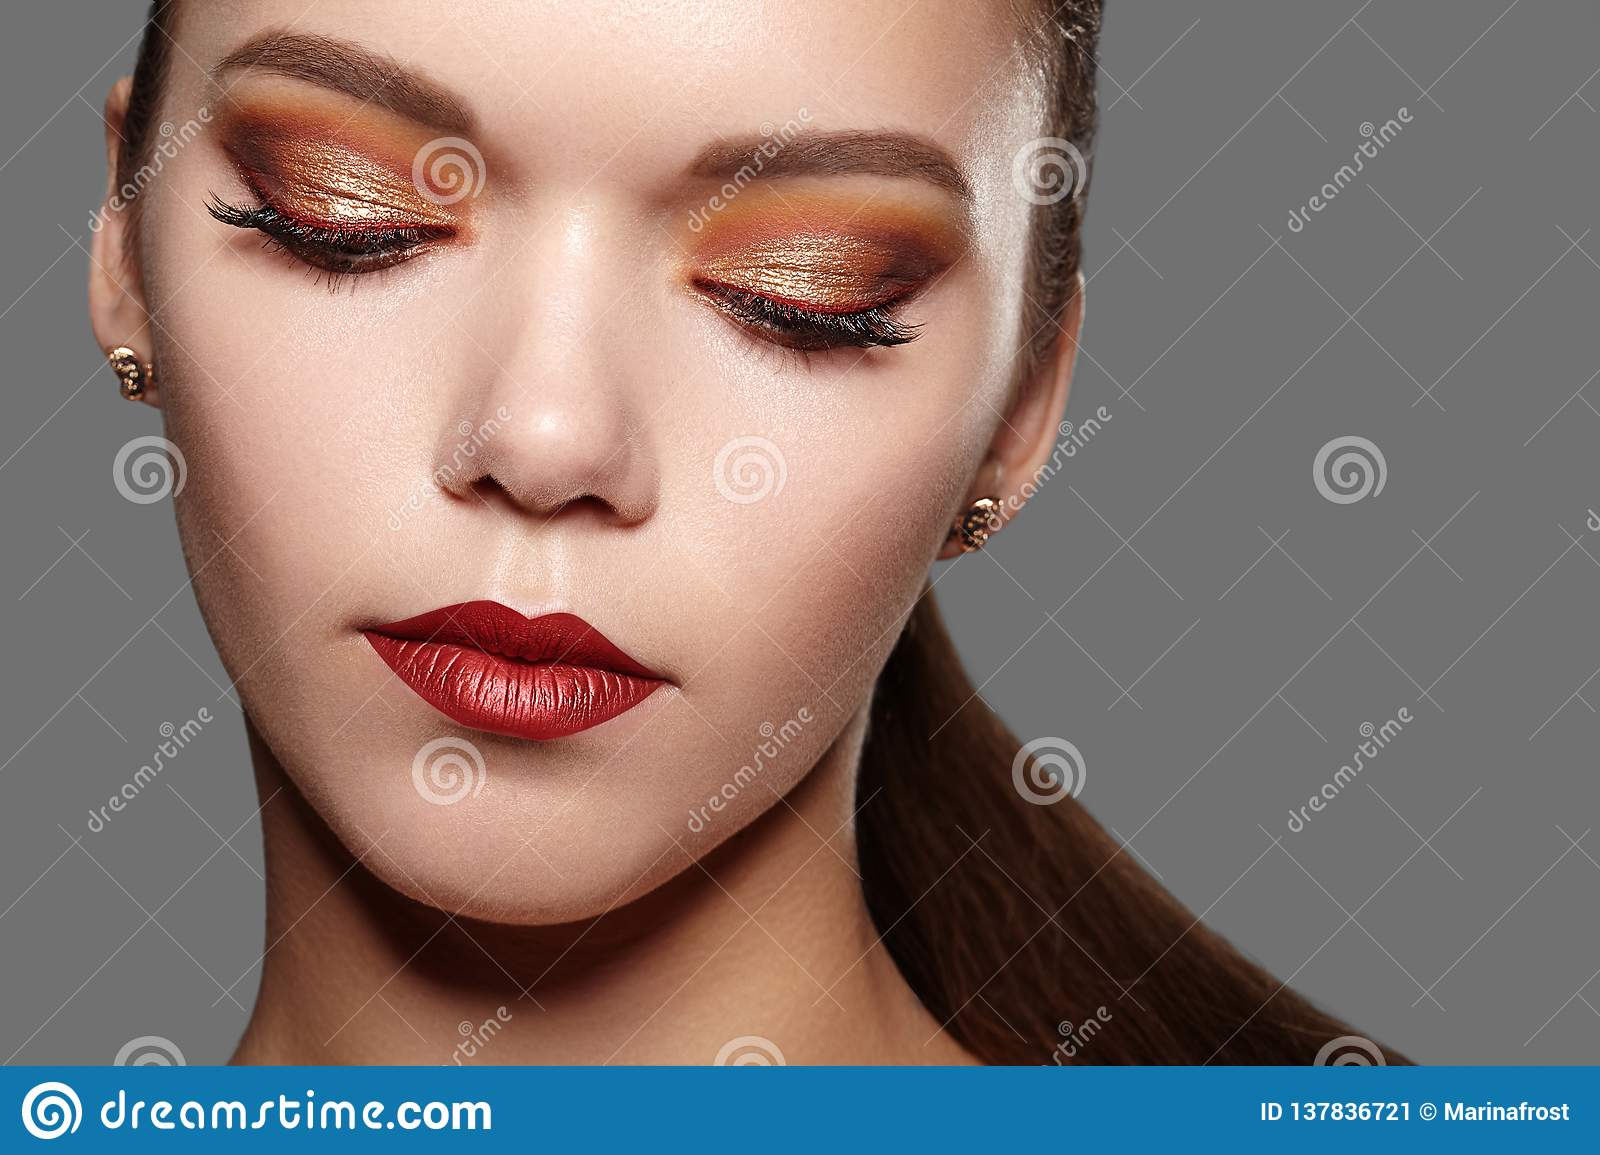 b492f9546ce Beautiful Woman with Professional Makeup. Party Gold Eye Make-up, Perfect  Eyebrows,